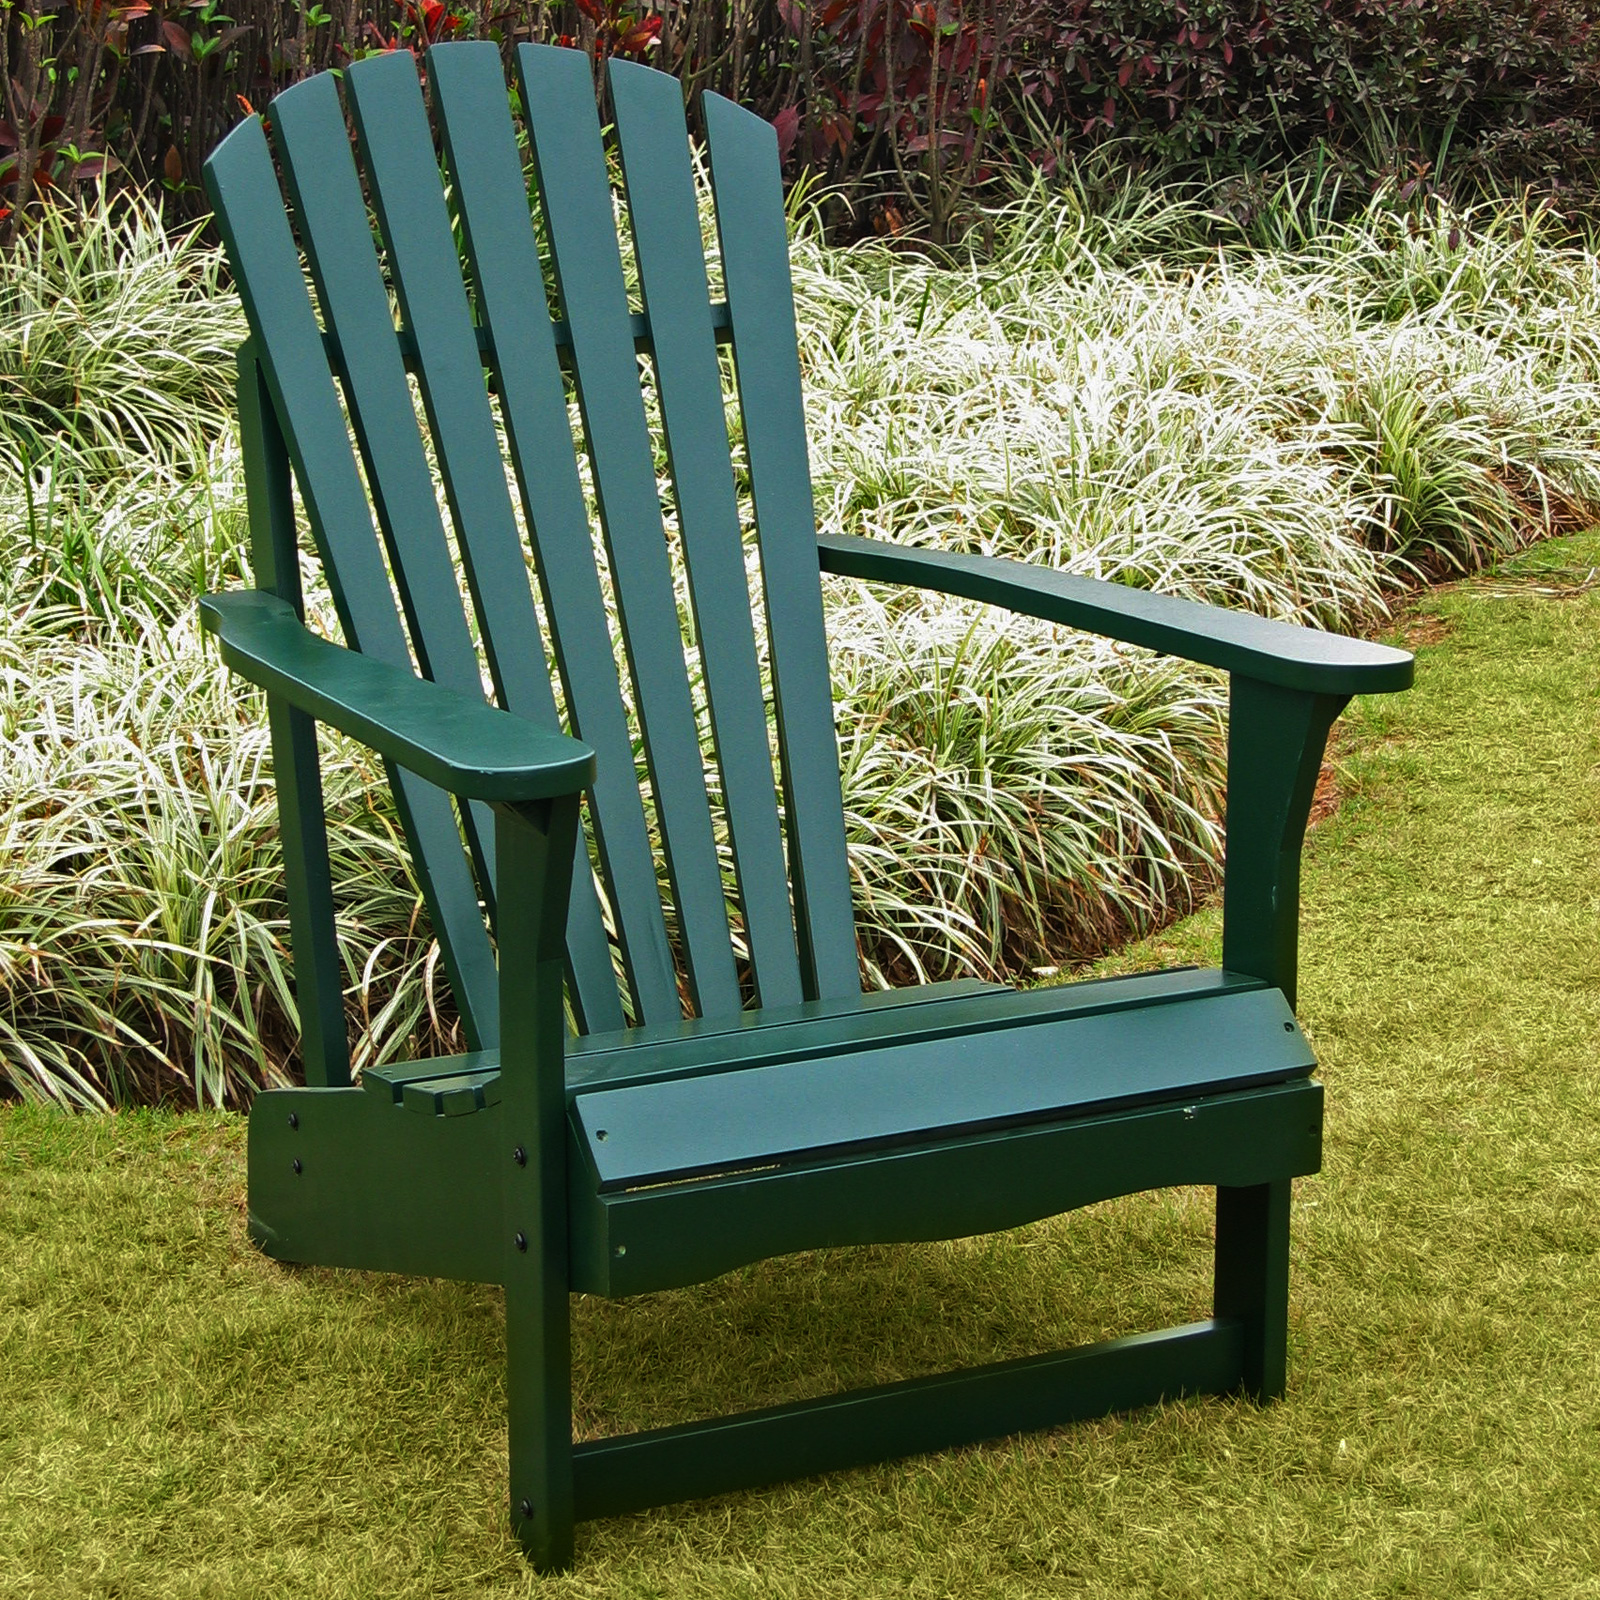 Shop Adirondack Chairs By Customer Favorite Colors